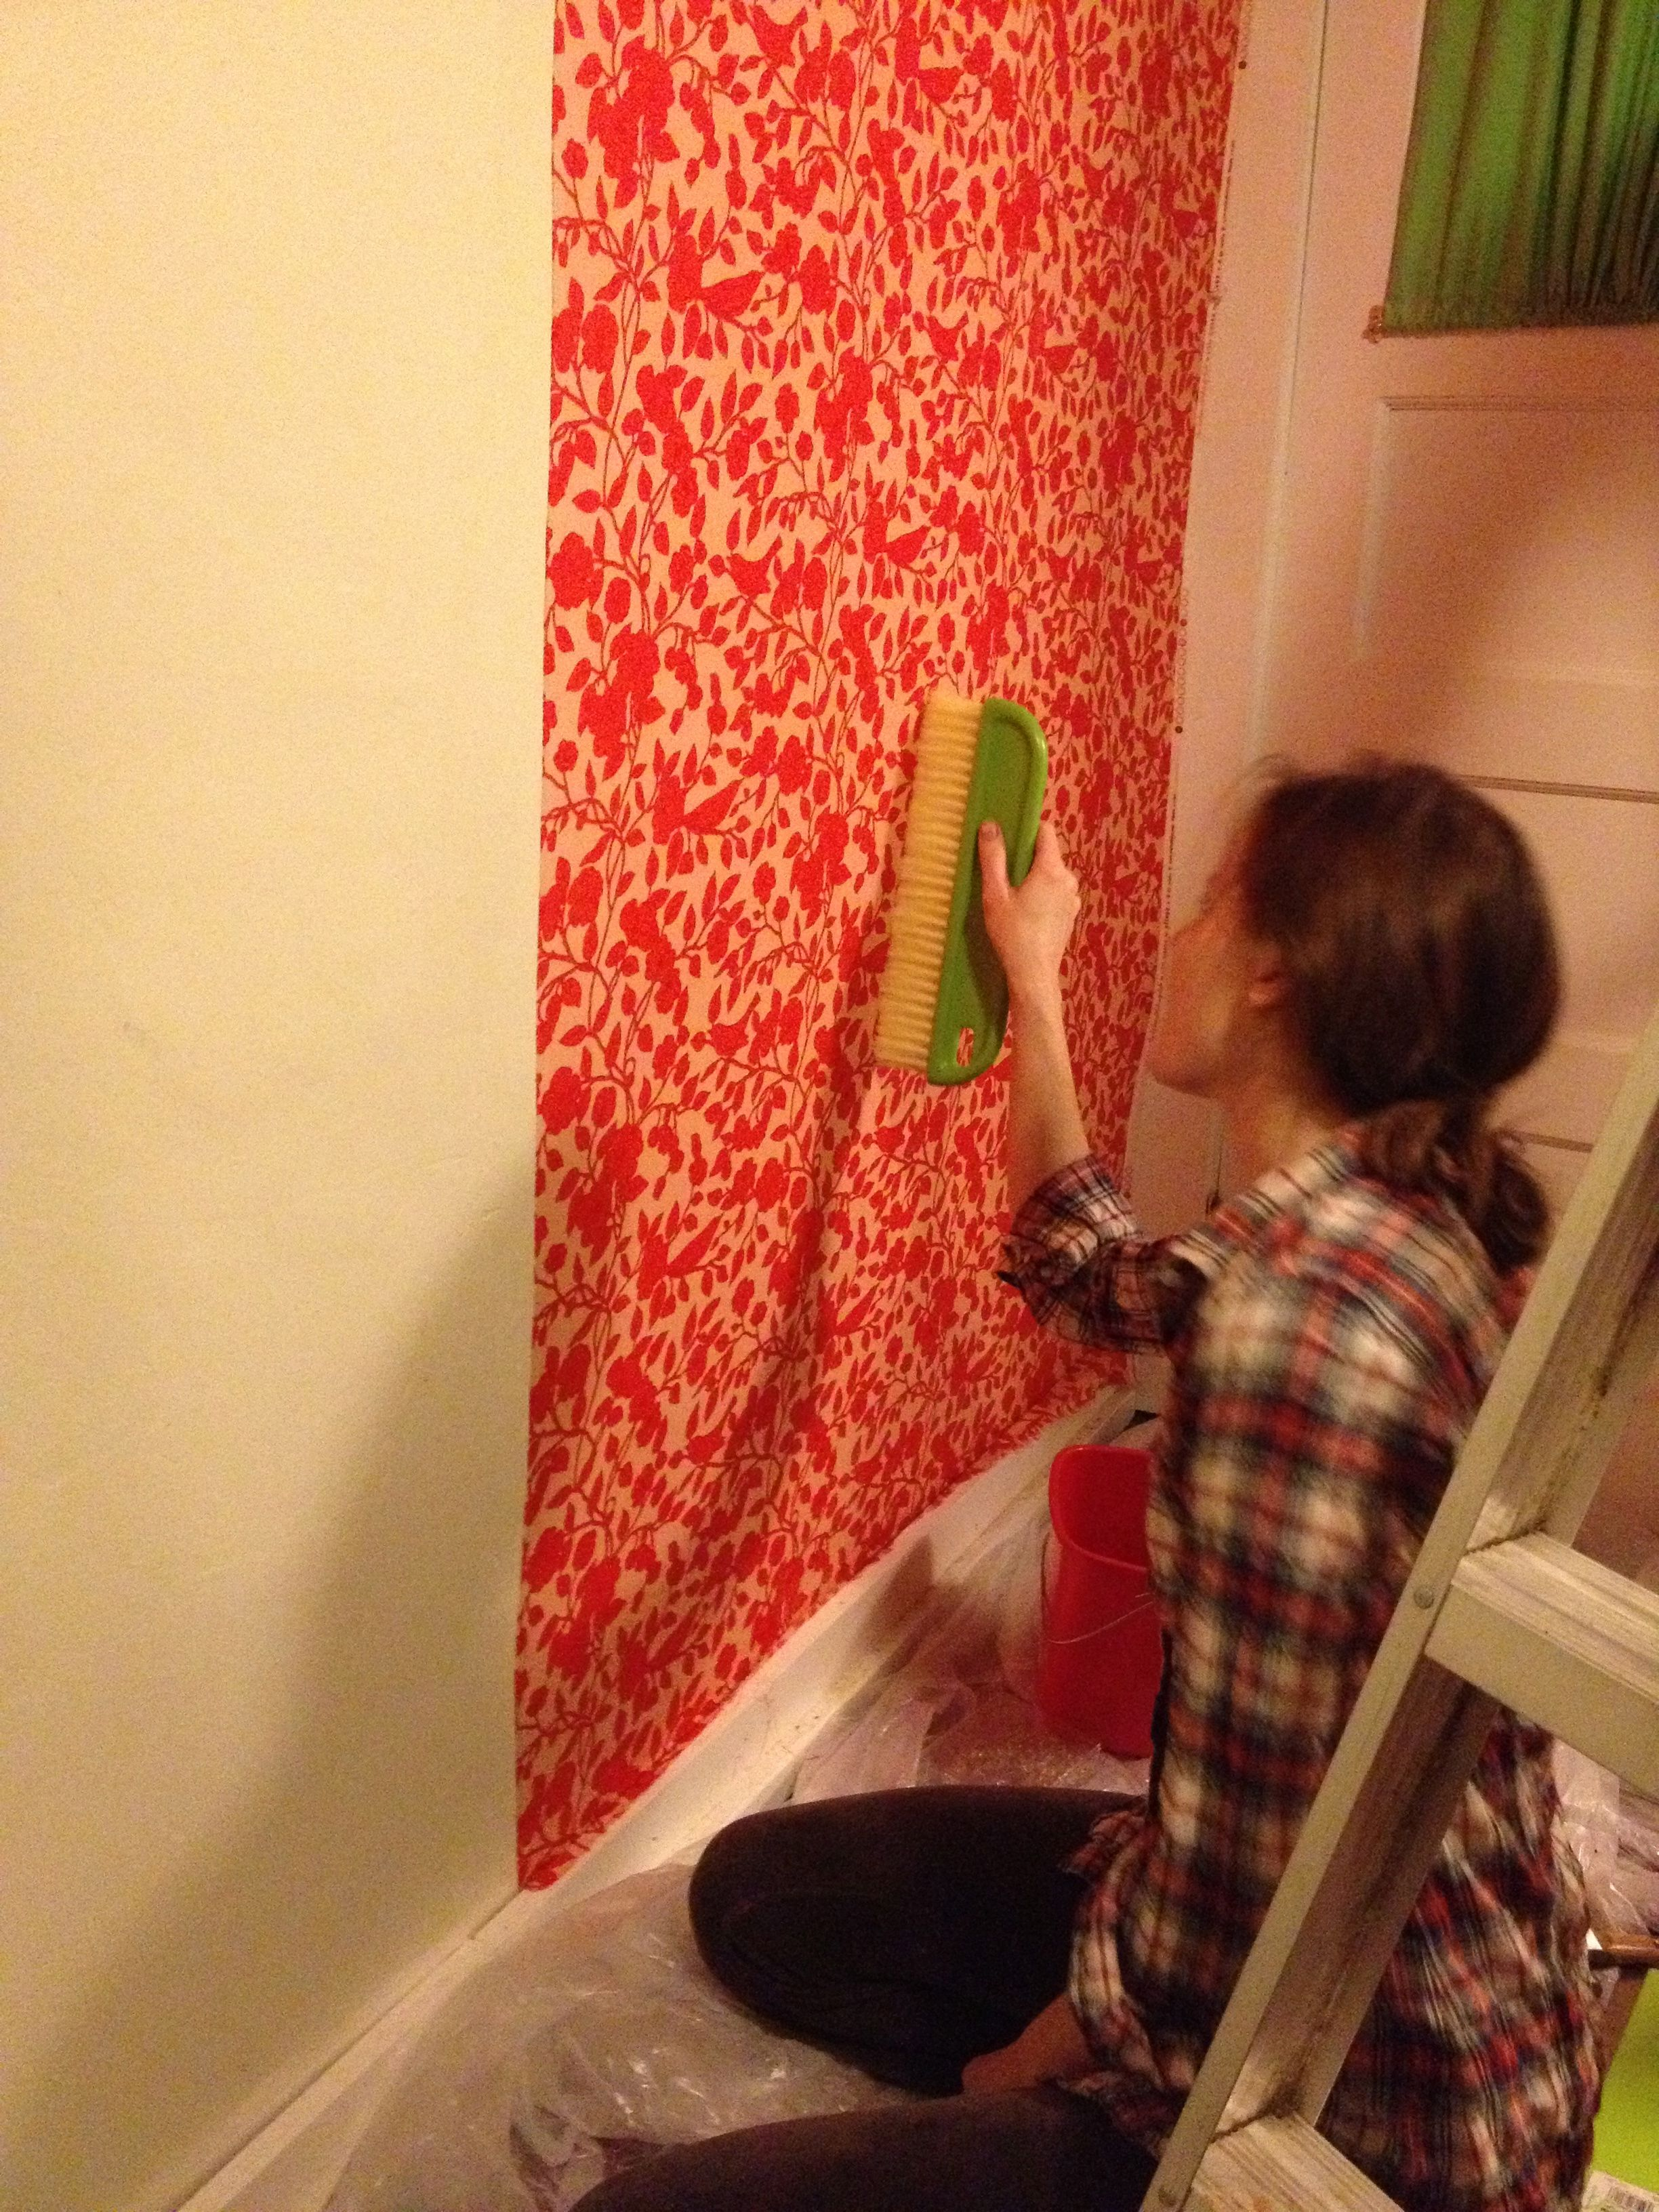 Use a paste of water and cornstarch to make removable wallpaper out